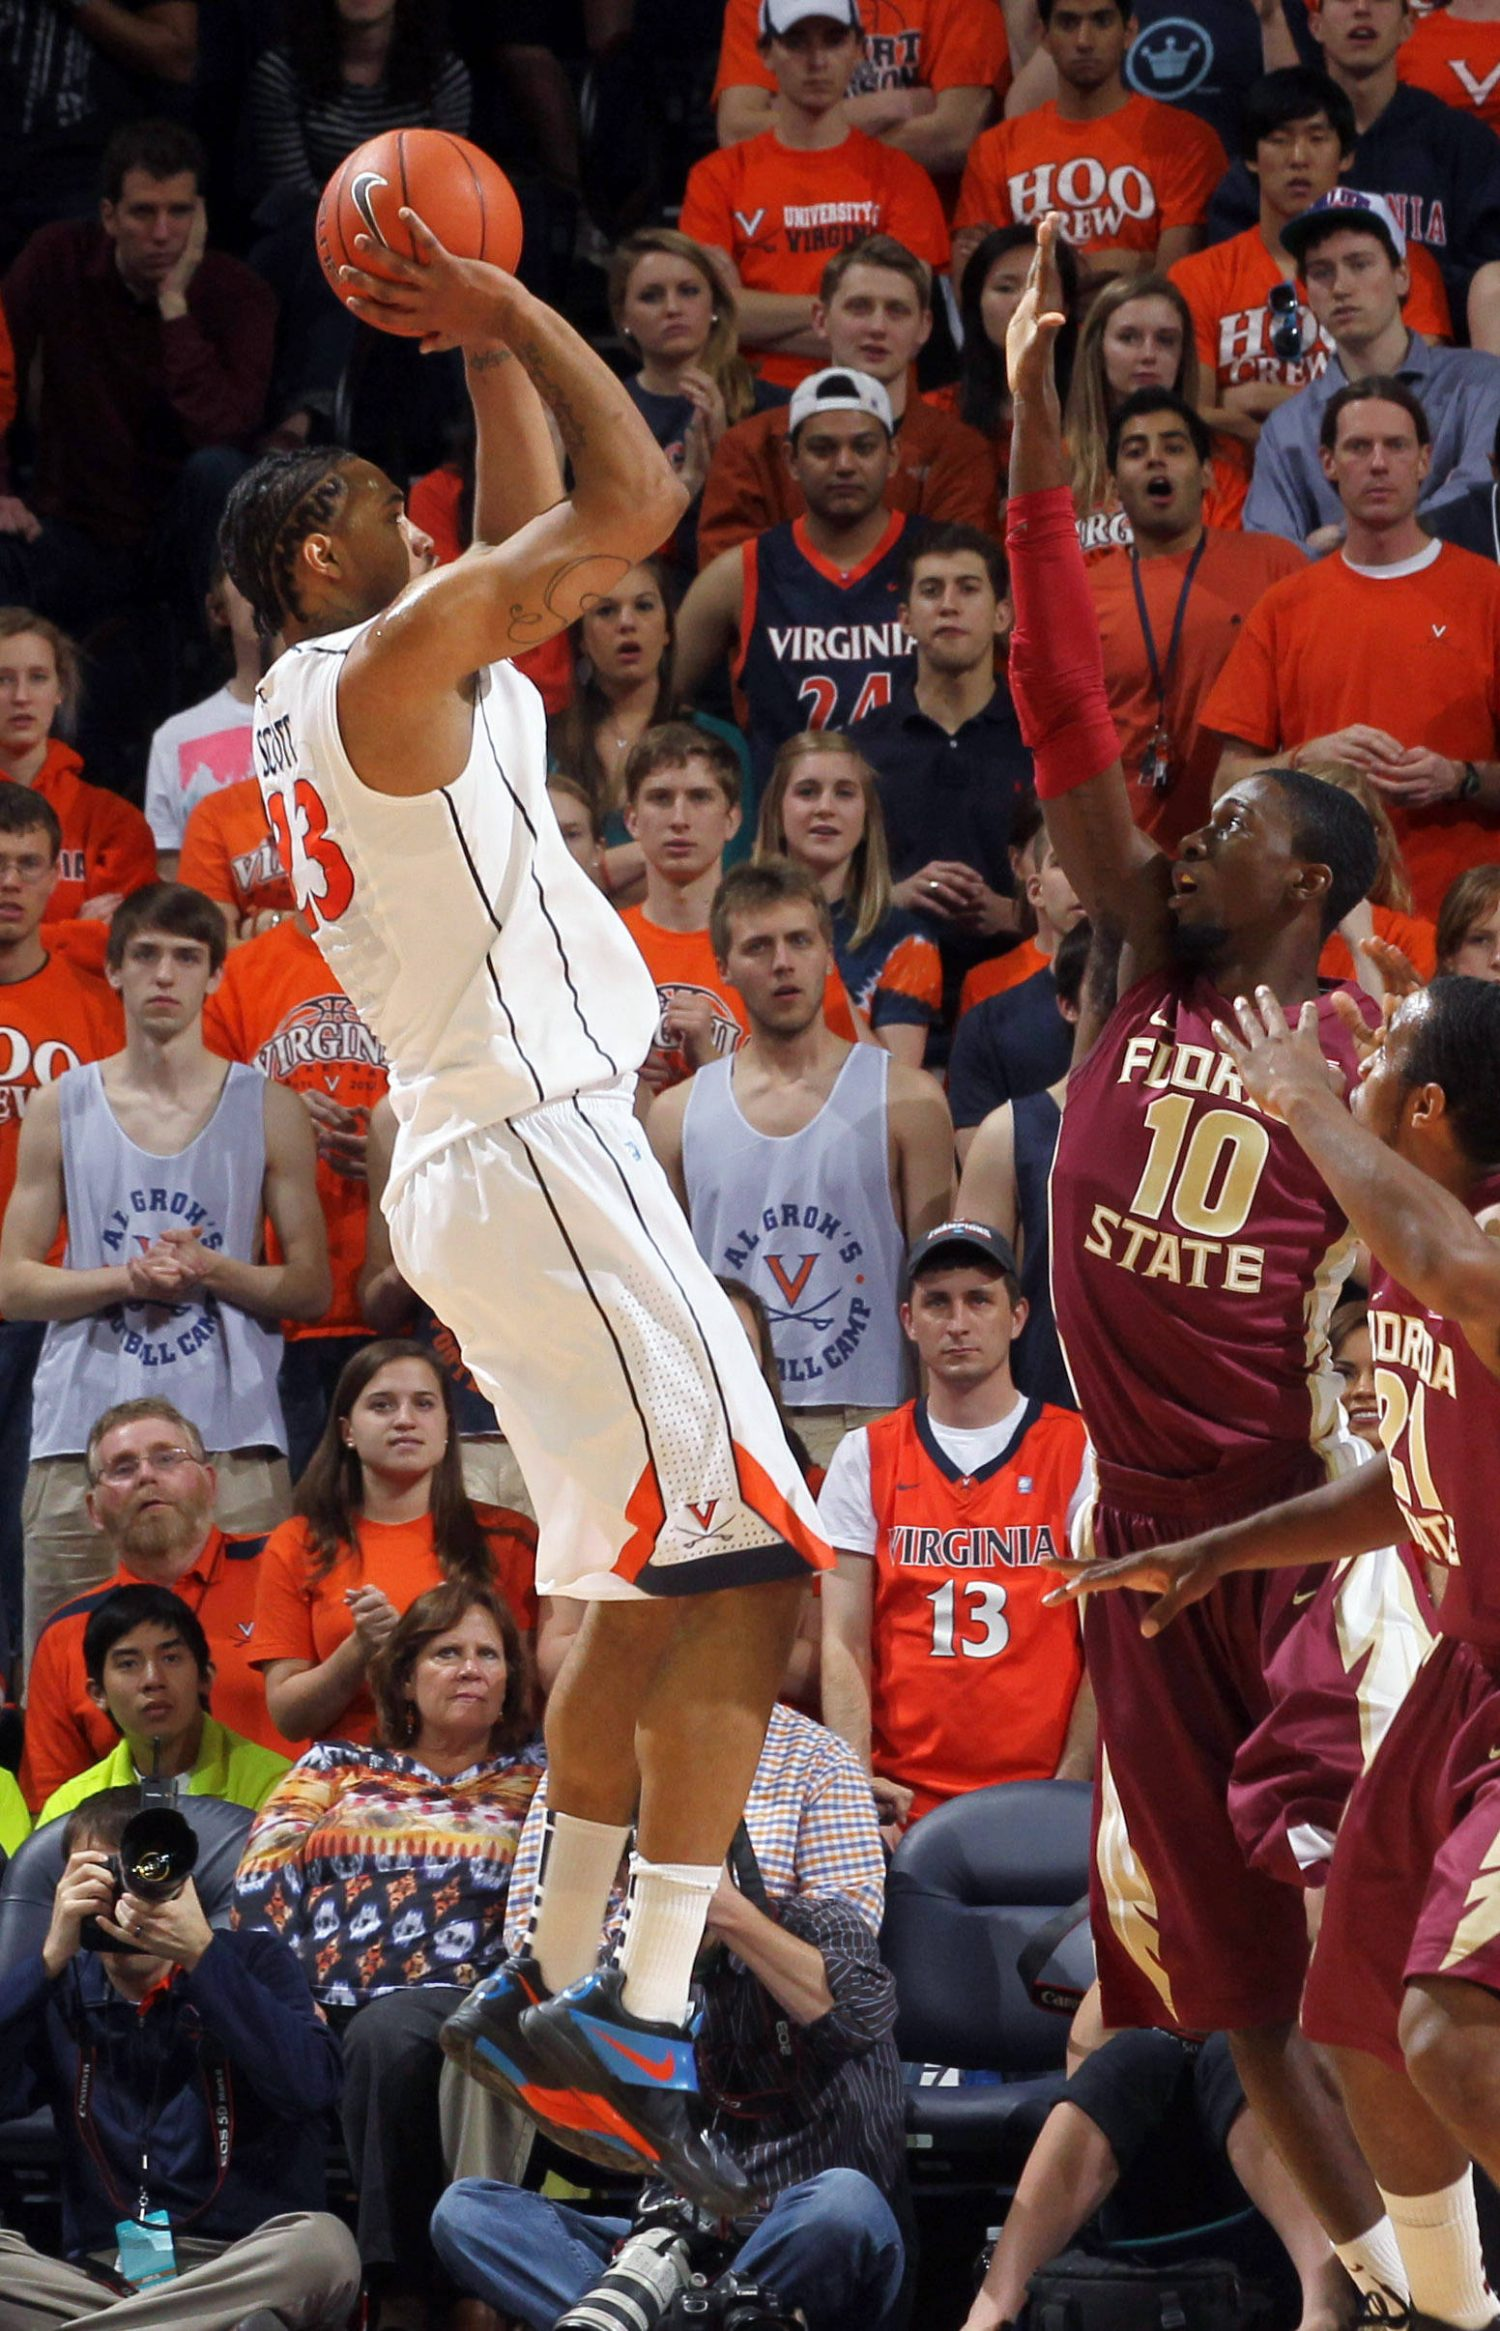 Virginia forward Mike Scott shoots over Florida State forward Okaro White during the first half. (AP Photo/Andrew Shurtleff)